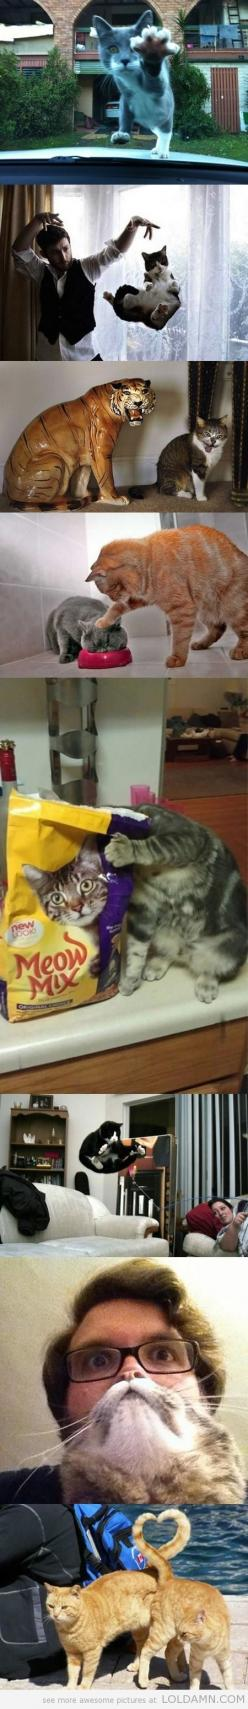 Perfectly Timed Cat Photos: Cats Cats, Funny Cats, So Funny, Timed Cat, Can'T Stop Laughing, Cat Photos, Animal, Cat Lady